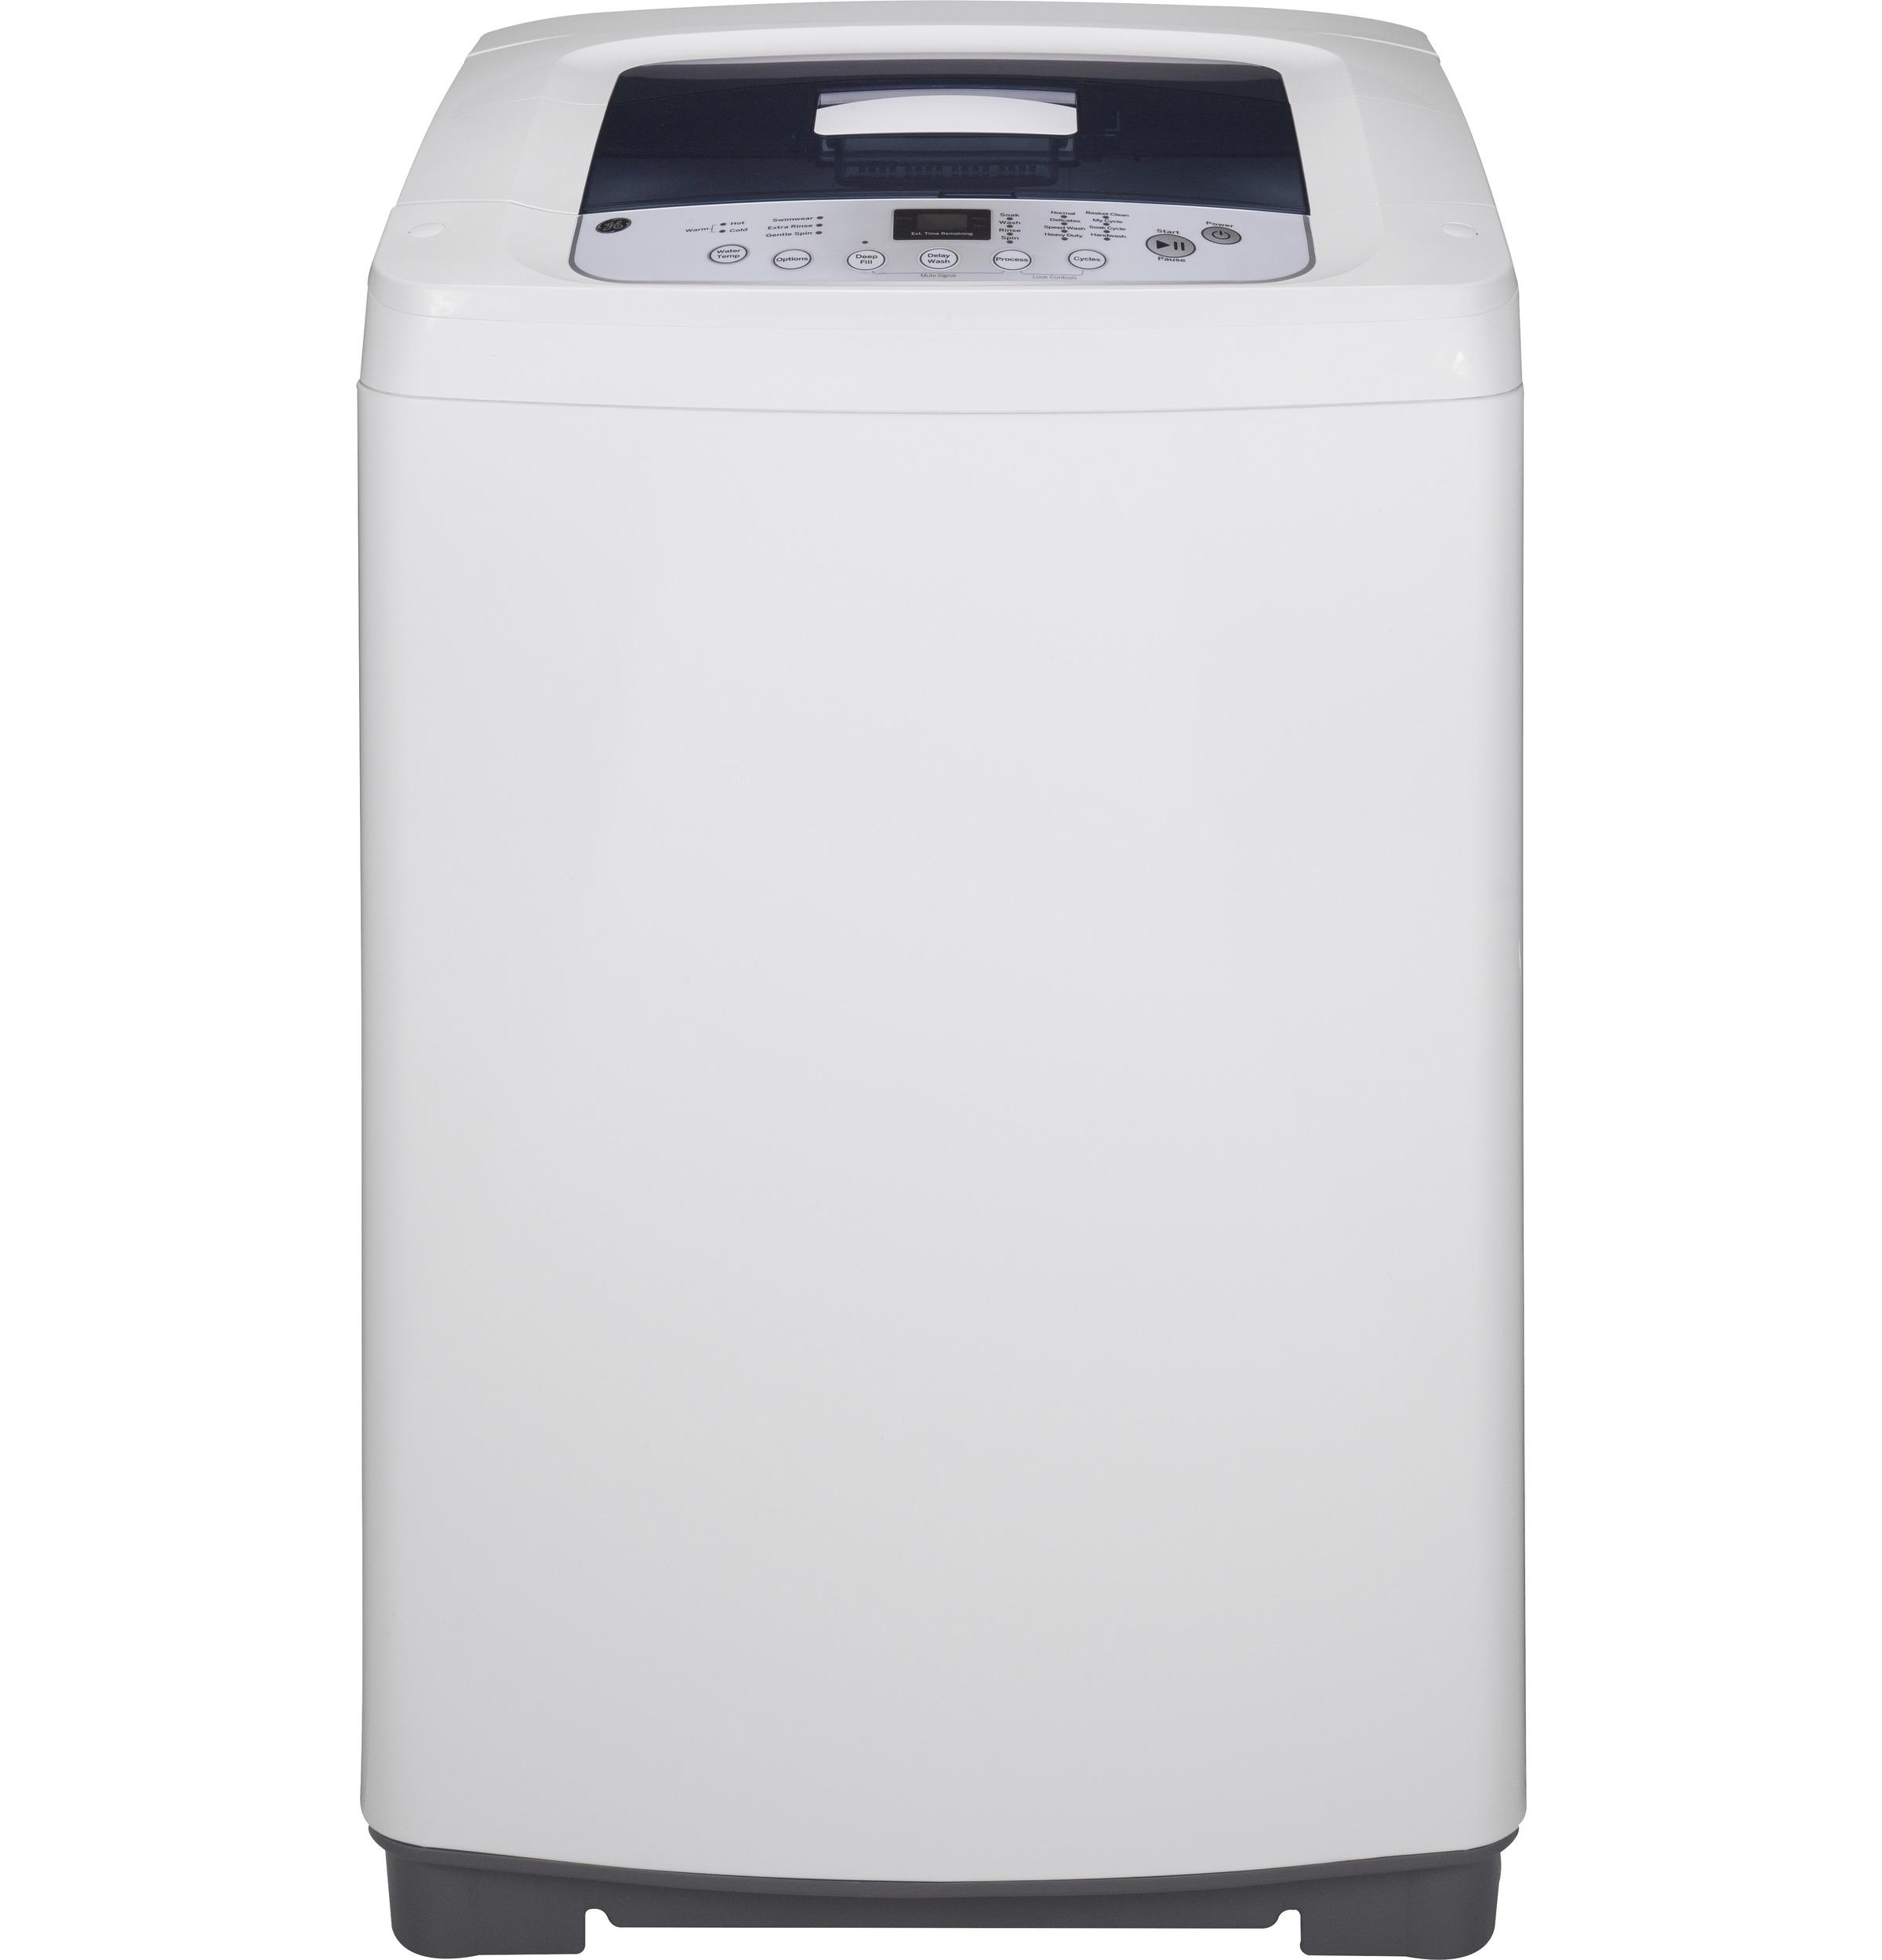 GE Space-Saving 2.6 DOE Cu. Ft. Capacity Portable Washer with Stainless Steel Basket